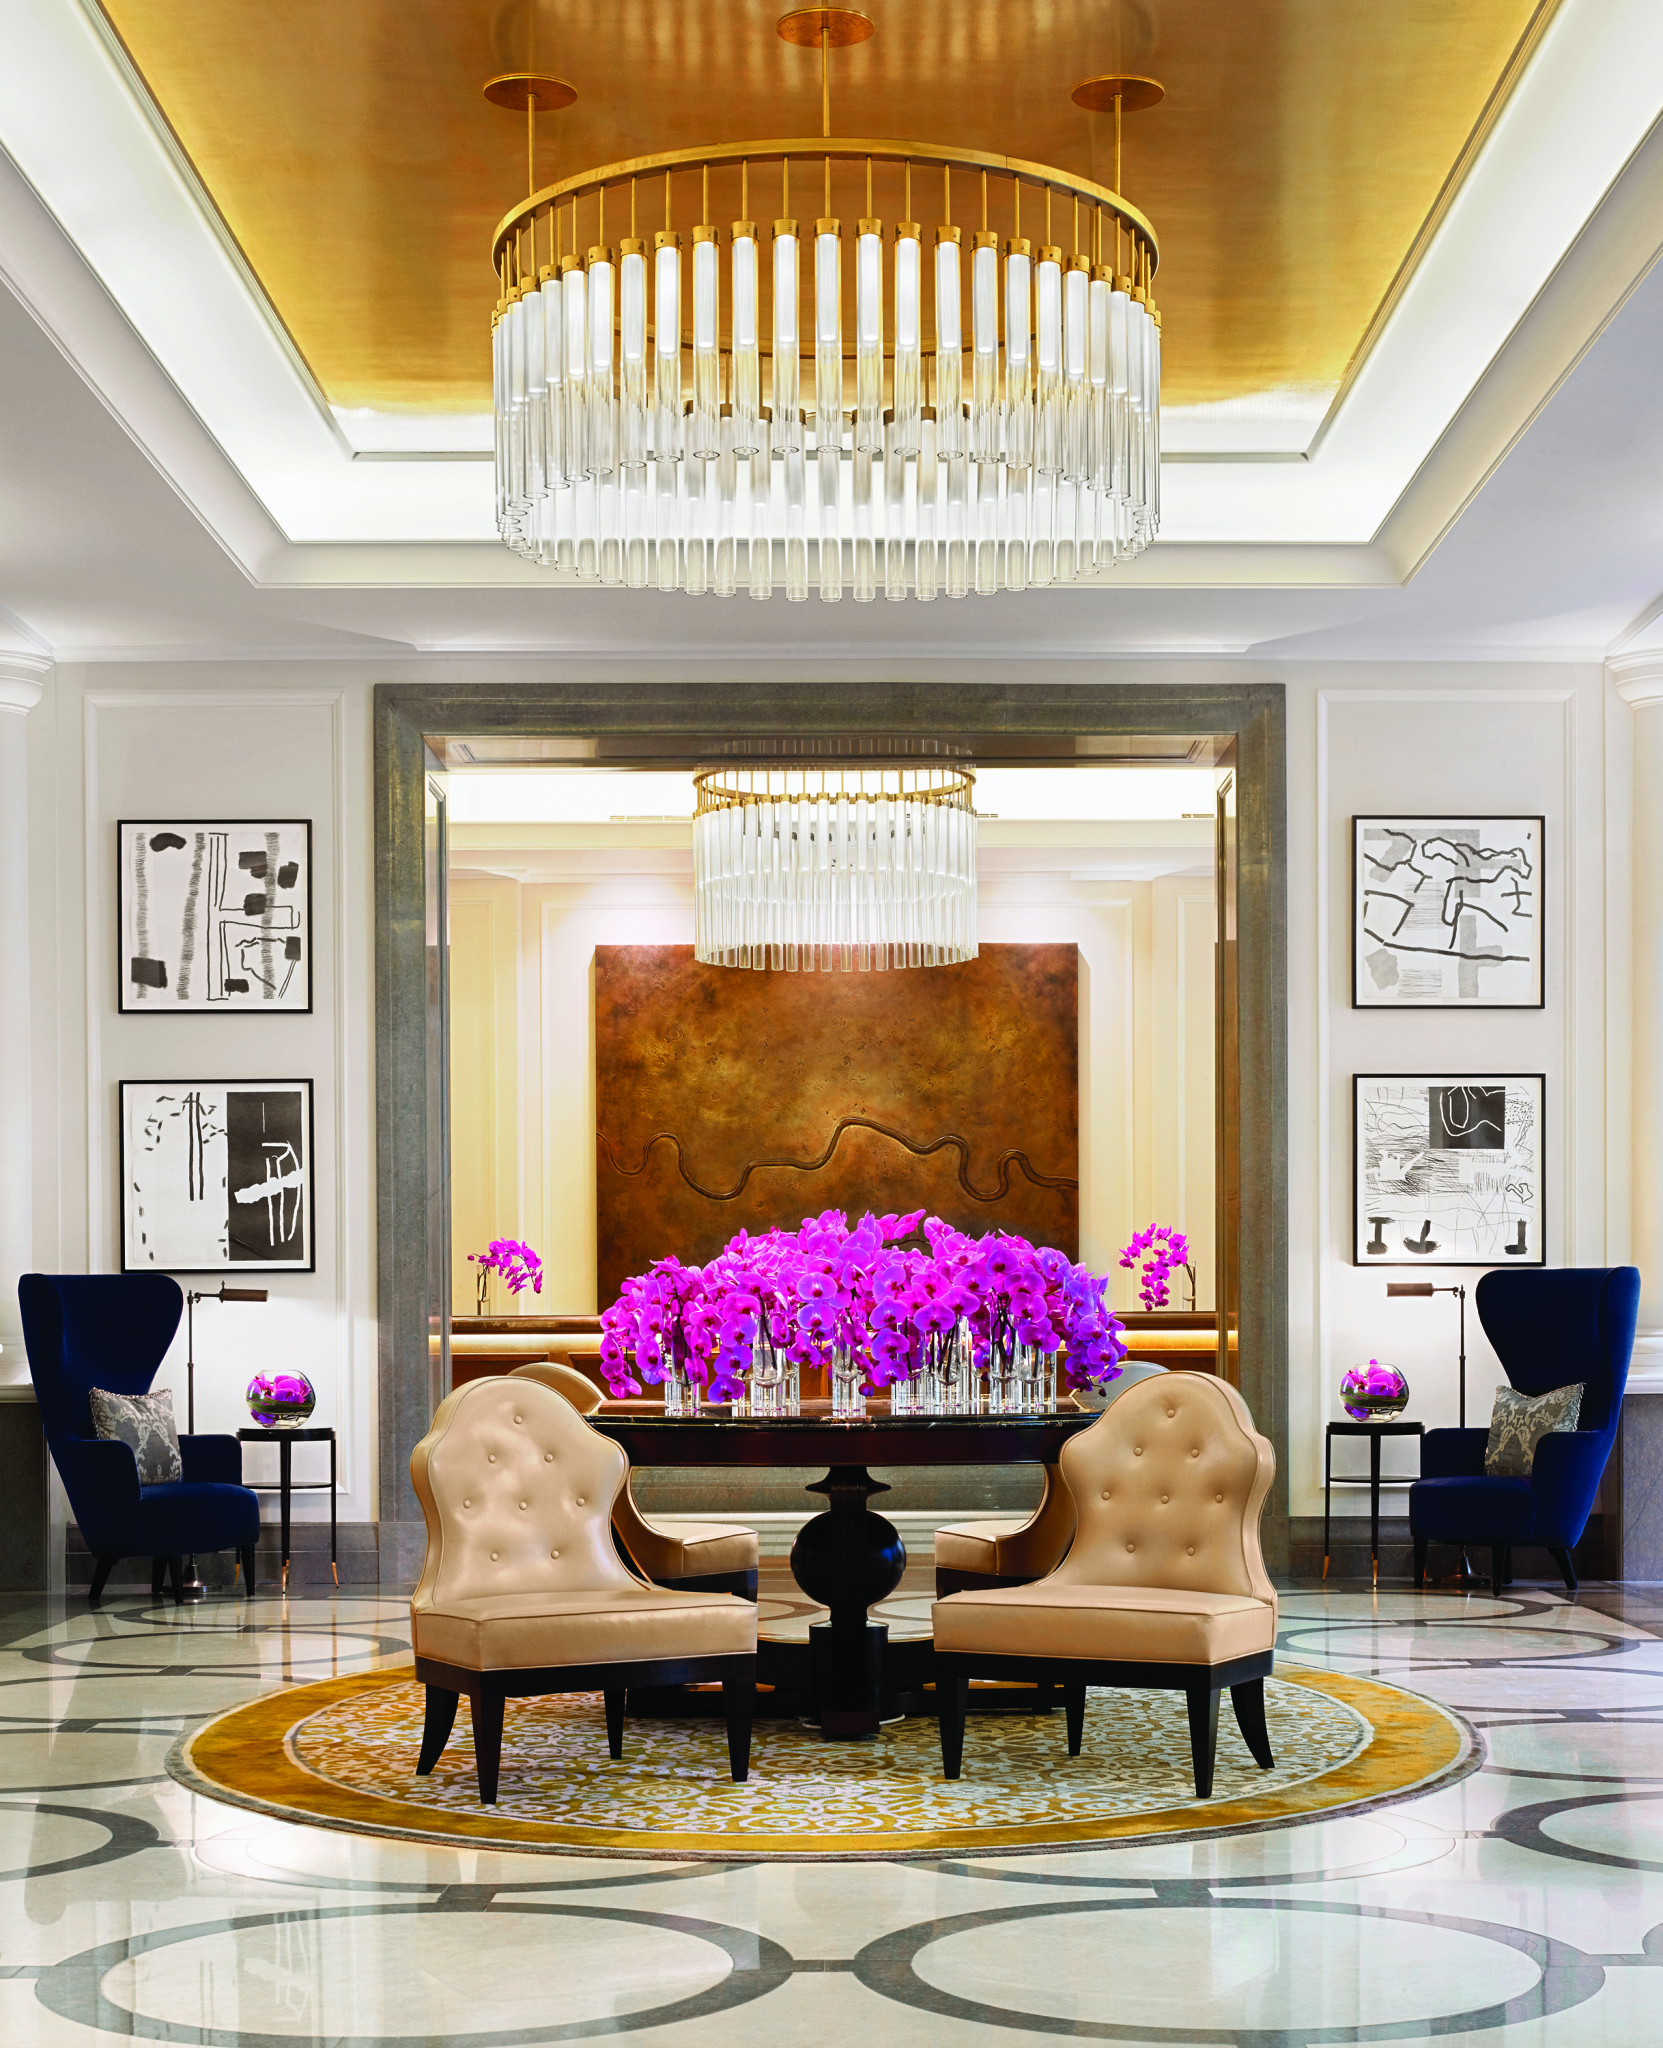 Royal weekend in corinthia hotel london the lux traveller for Hotel interior decor